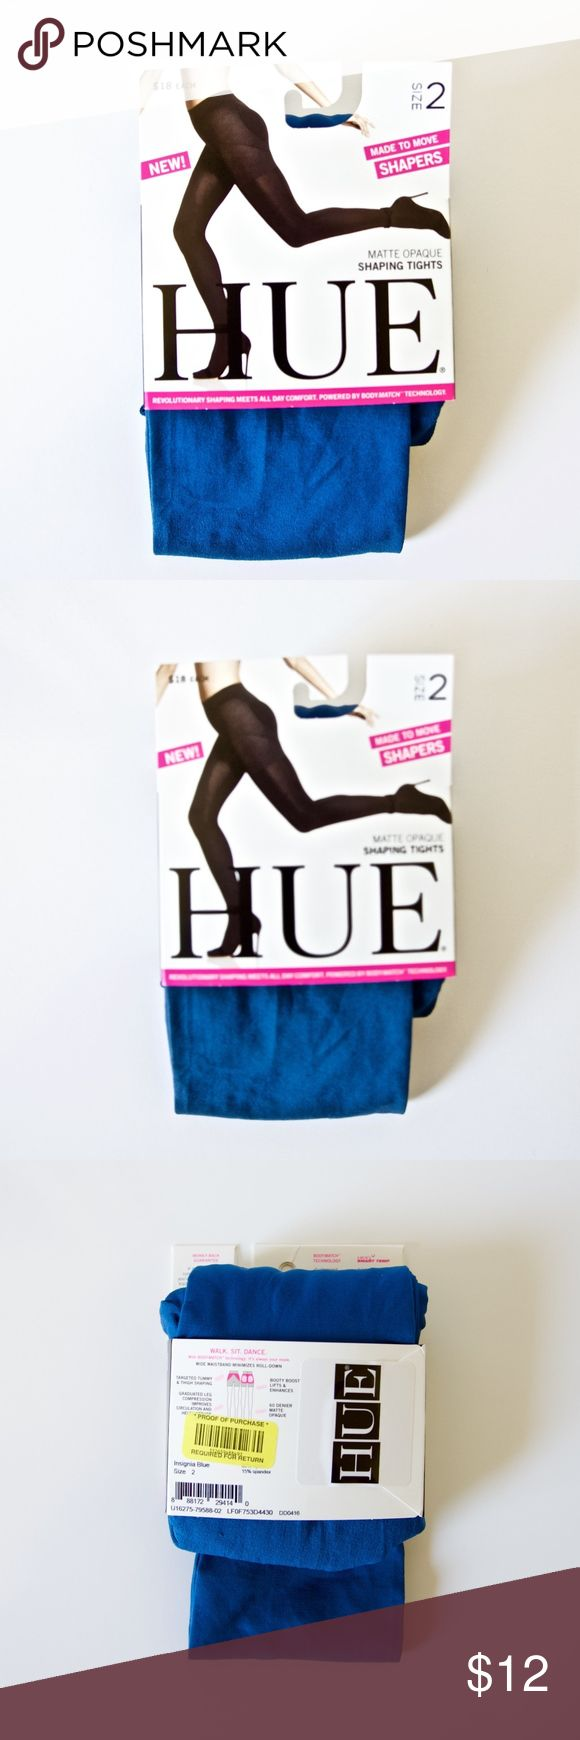 """NWT HUE Blue Opaque Tights Matte Opaque Shaping tights in Insignia Blue. Has wide waist band, minimizing roll down, tummy and thigh shaping, graduated leg compression to improve circulation, and booty lift and enhance. Also has Smart Temp, which manages body heat for optimal temperature control. Size 2, which is equivalent to 5' 5"""" - 6' 0"""" height and 120 - 170 lbs. In original packaging, never been used! HUE Accessories Hosiery & Socks"""